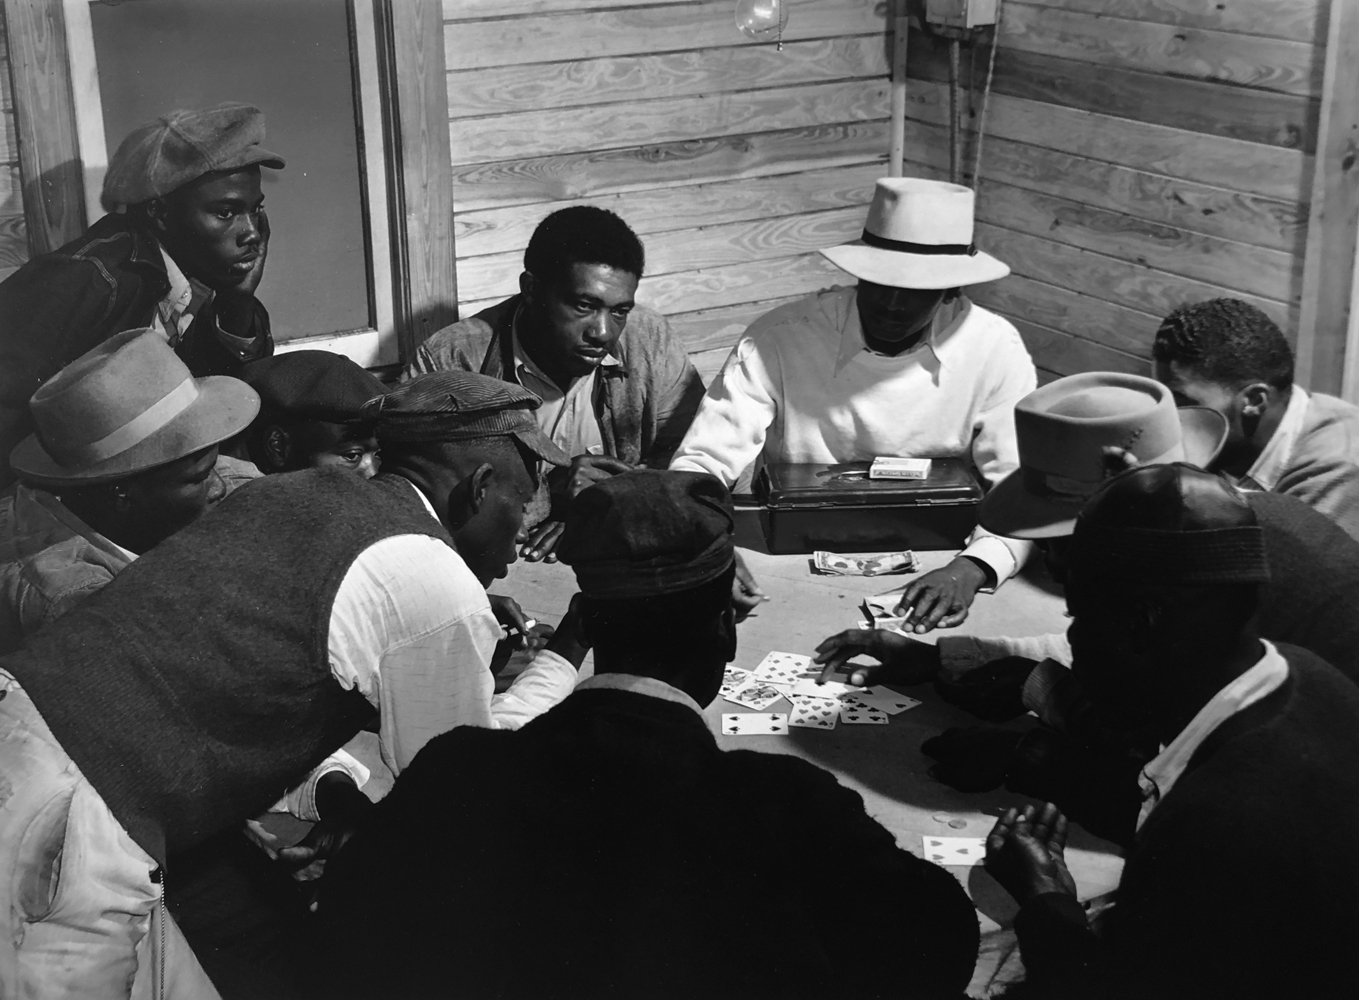 Marion Post Wolcott, Gambling in a Juke Joint, A Skin Game, near Moore Hanen, Florida, 1941, gelatin silver print, 11 x 14 inches, signed by the artist, $3000.